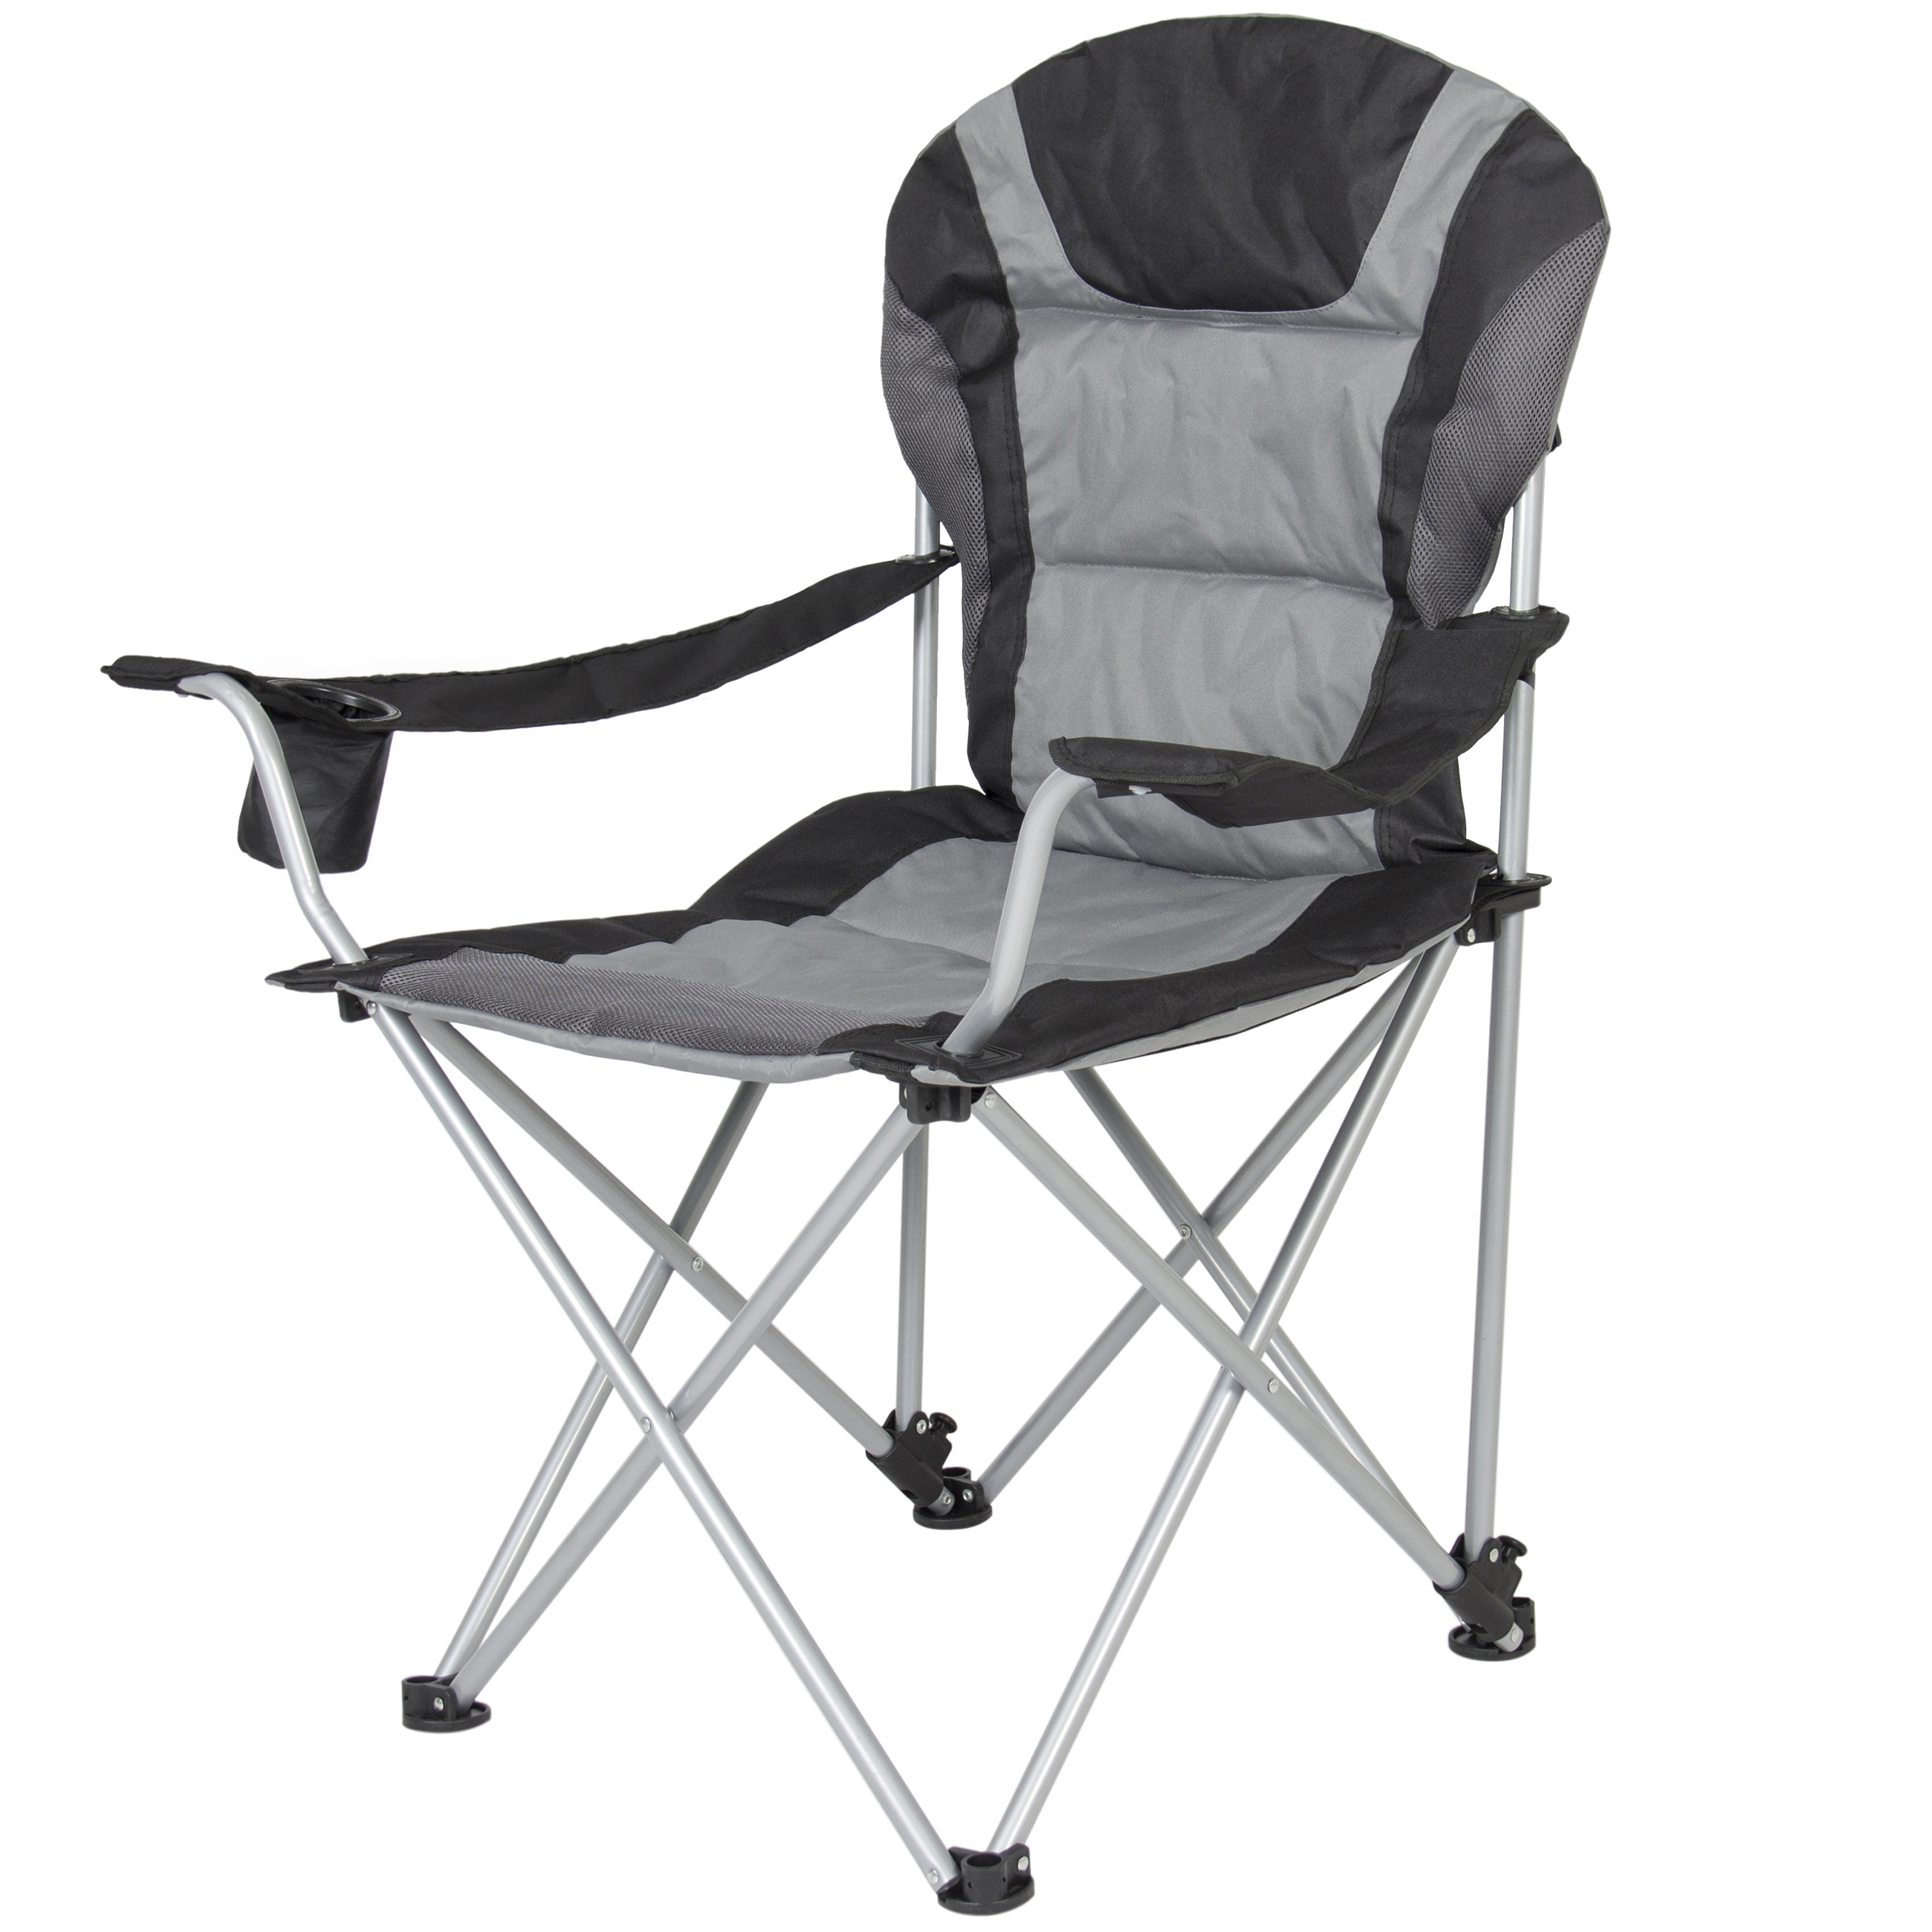 tall fishing chair wonda white bonded leather accent with wood arms folding chairs outdoor stool foldable